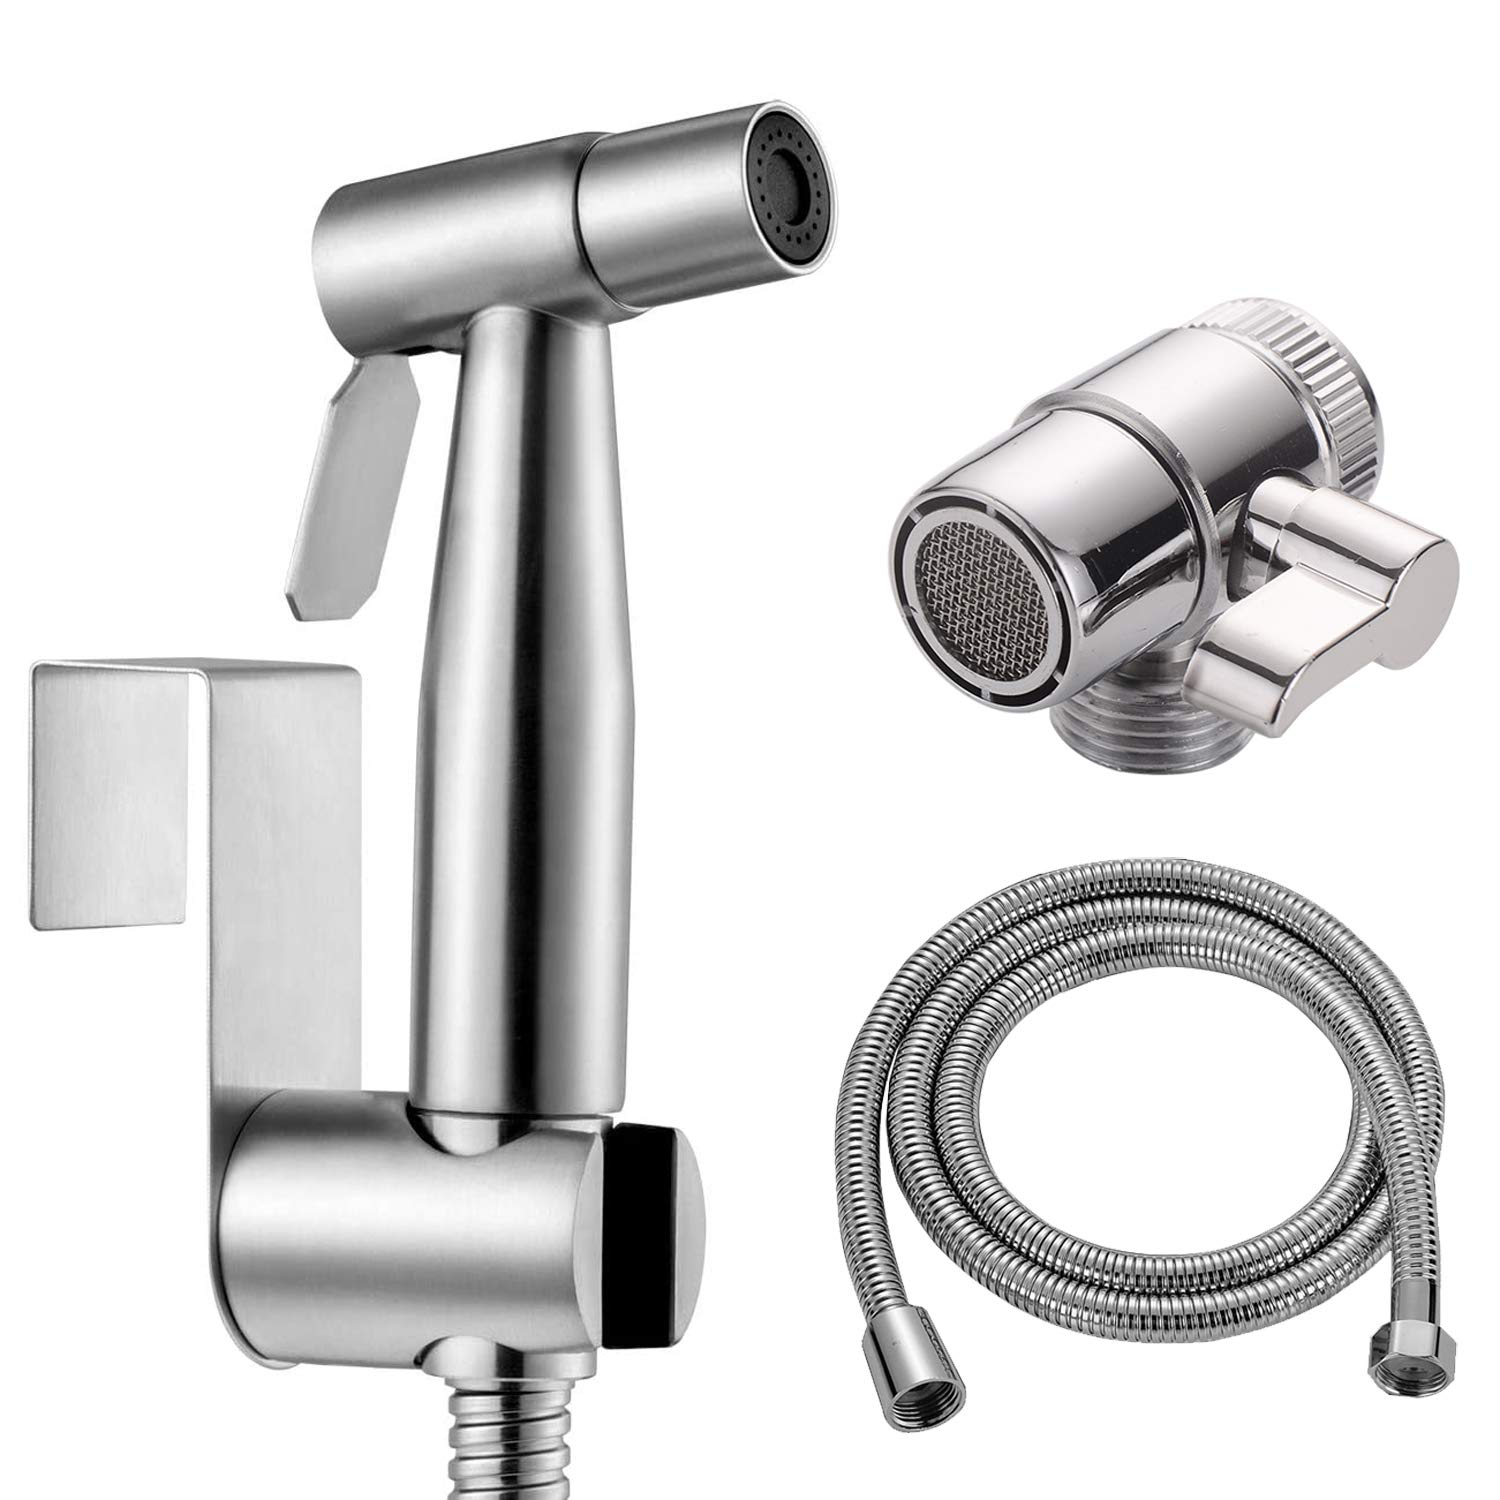 Handheld Bidet Sprayer Toilet Kit, Stainless Steel Muslim Shower and Baby Cloth Diaper Sprayer Kit - with Faucet Splitter,Hose and hook up Toilet or Wall Mount